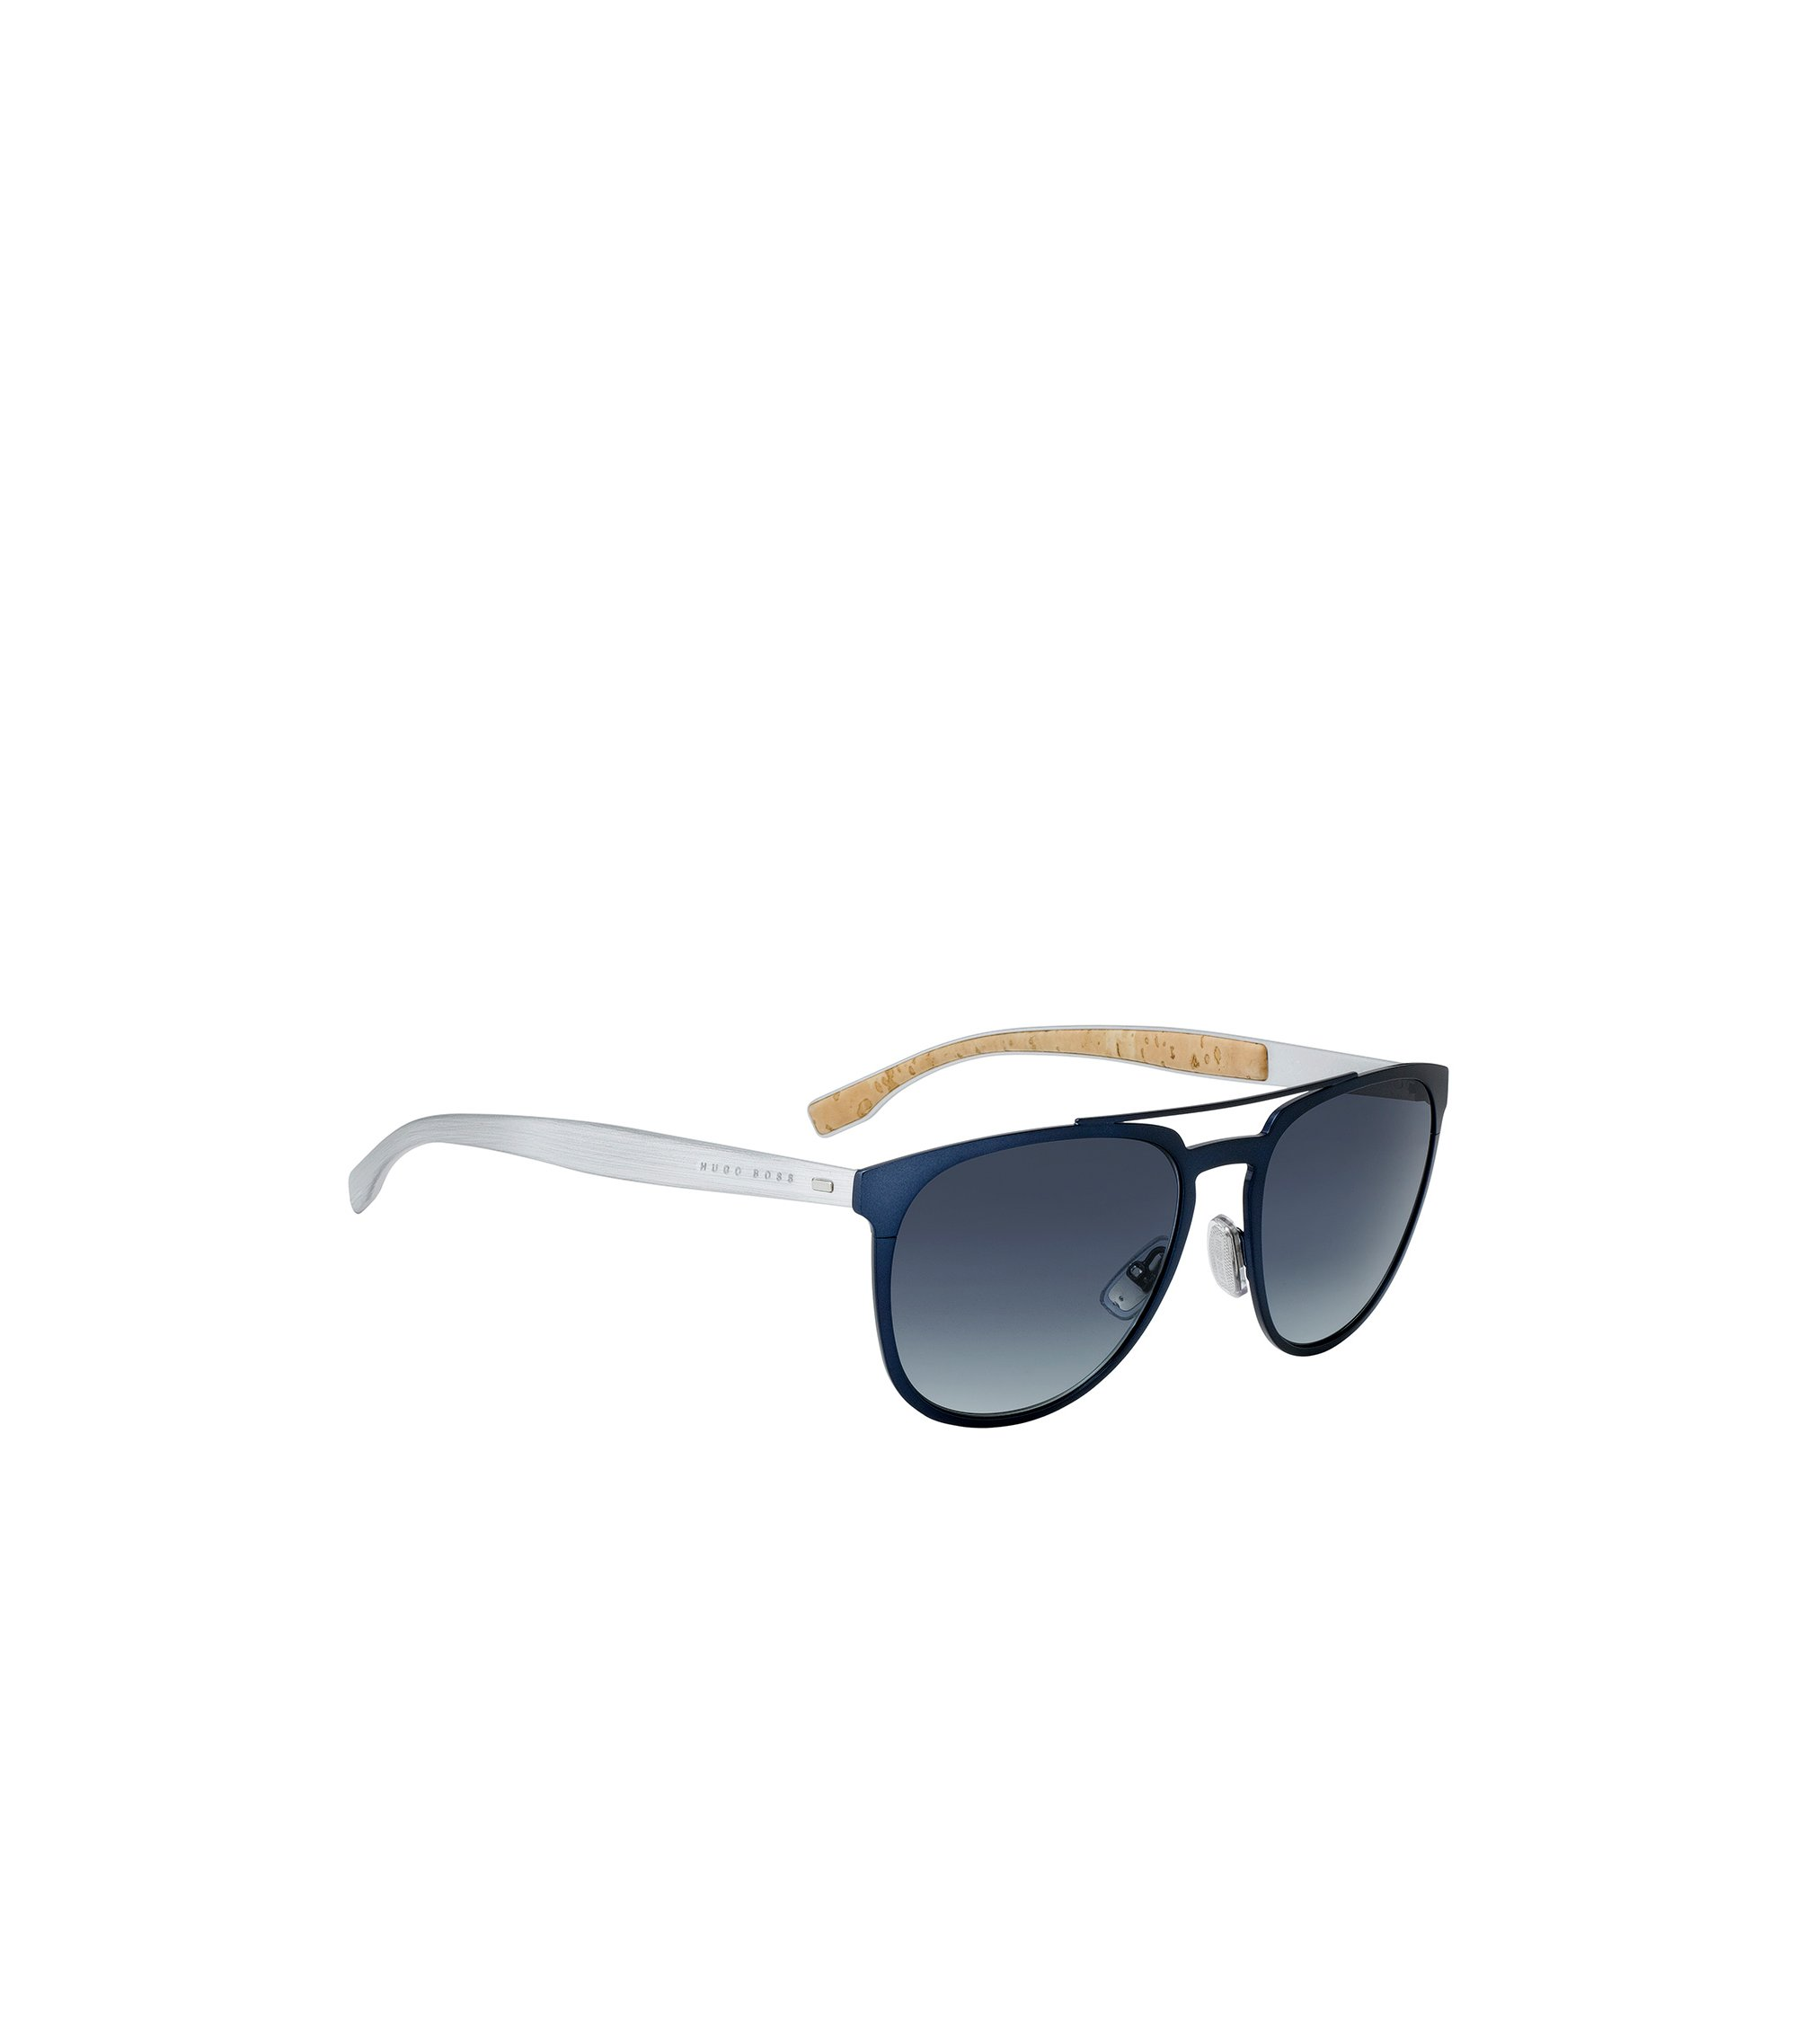 Dark Grey Gradient Round Metal Sunglasses | BOSS 0882S, Assorted-Pre-Pack